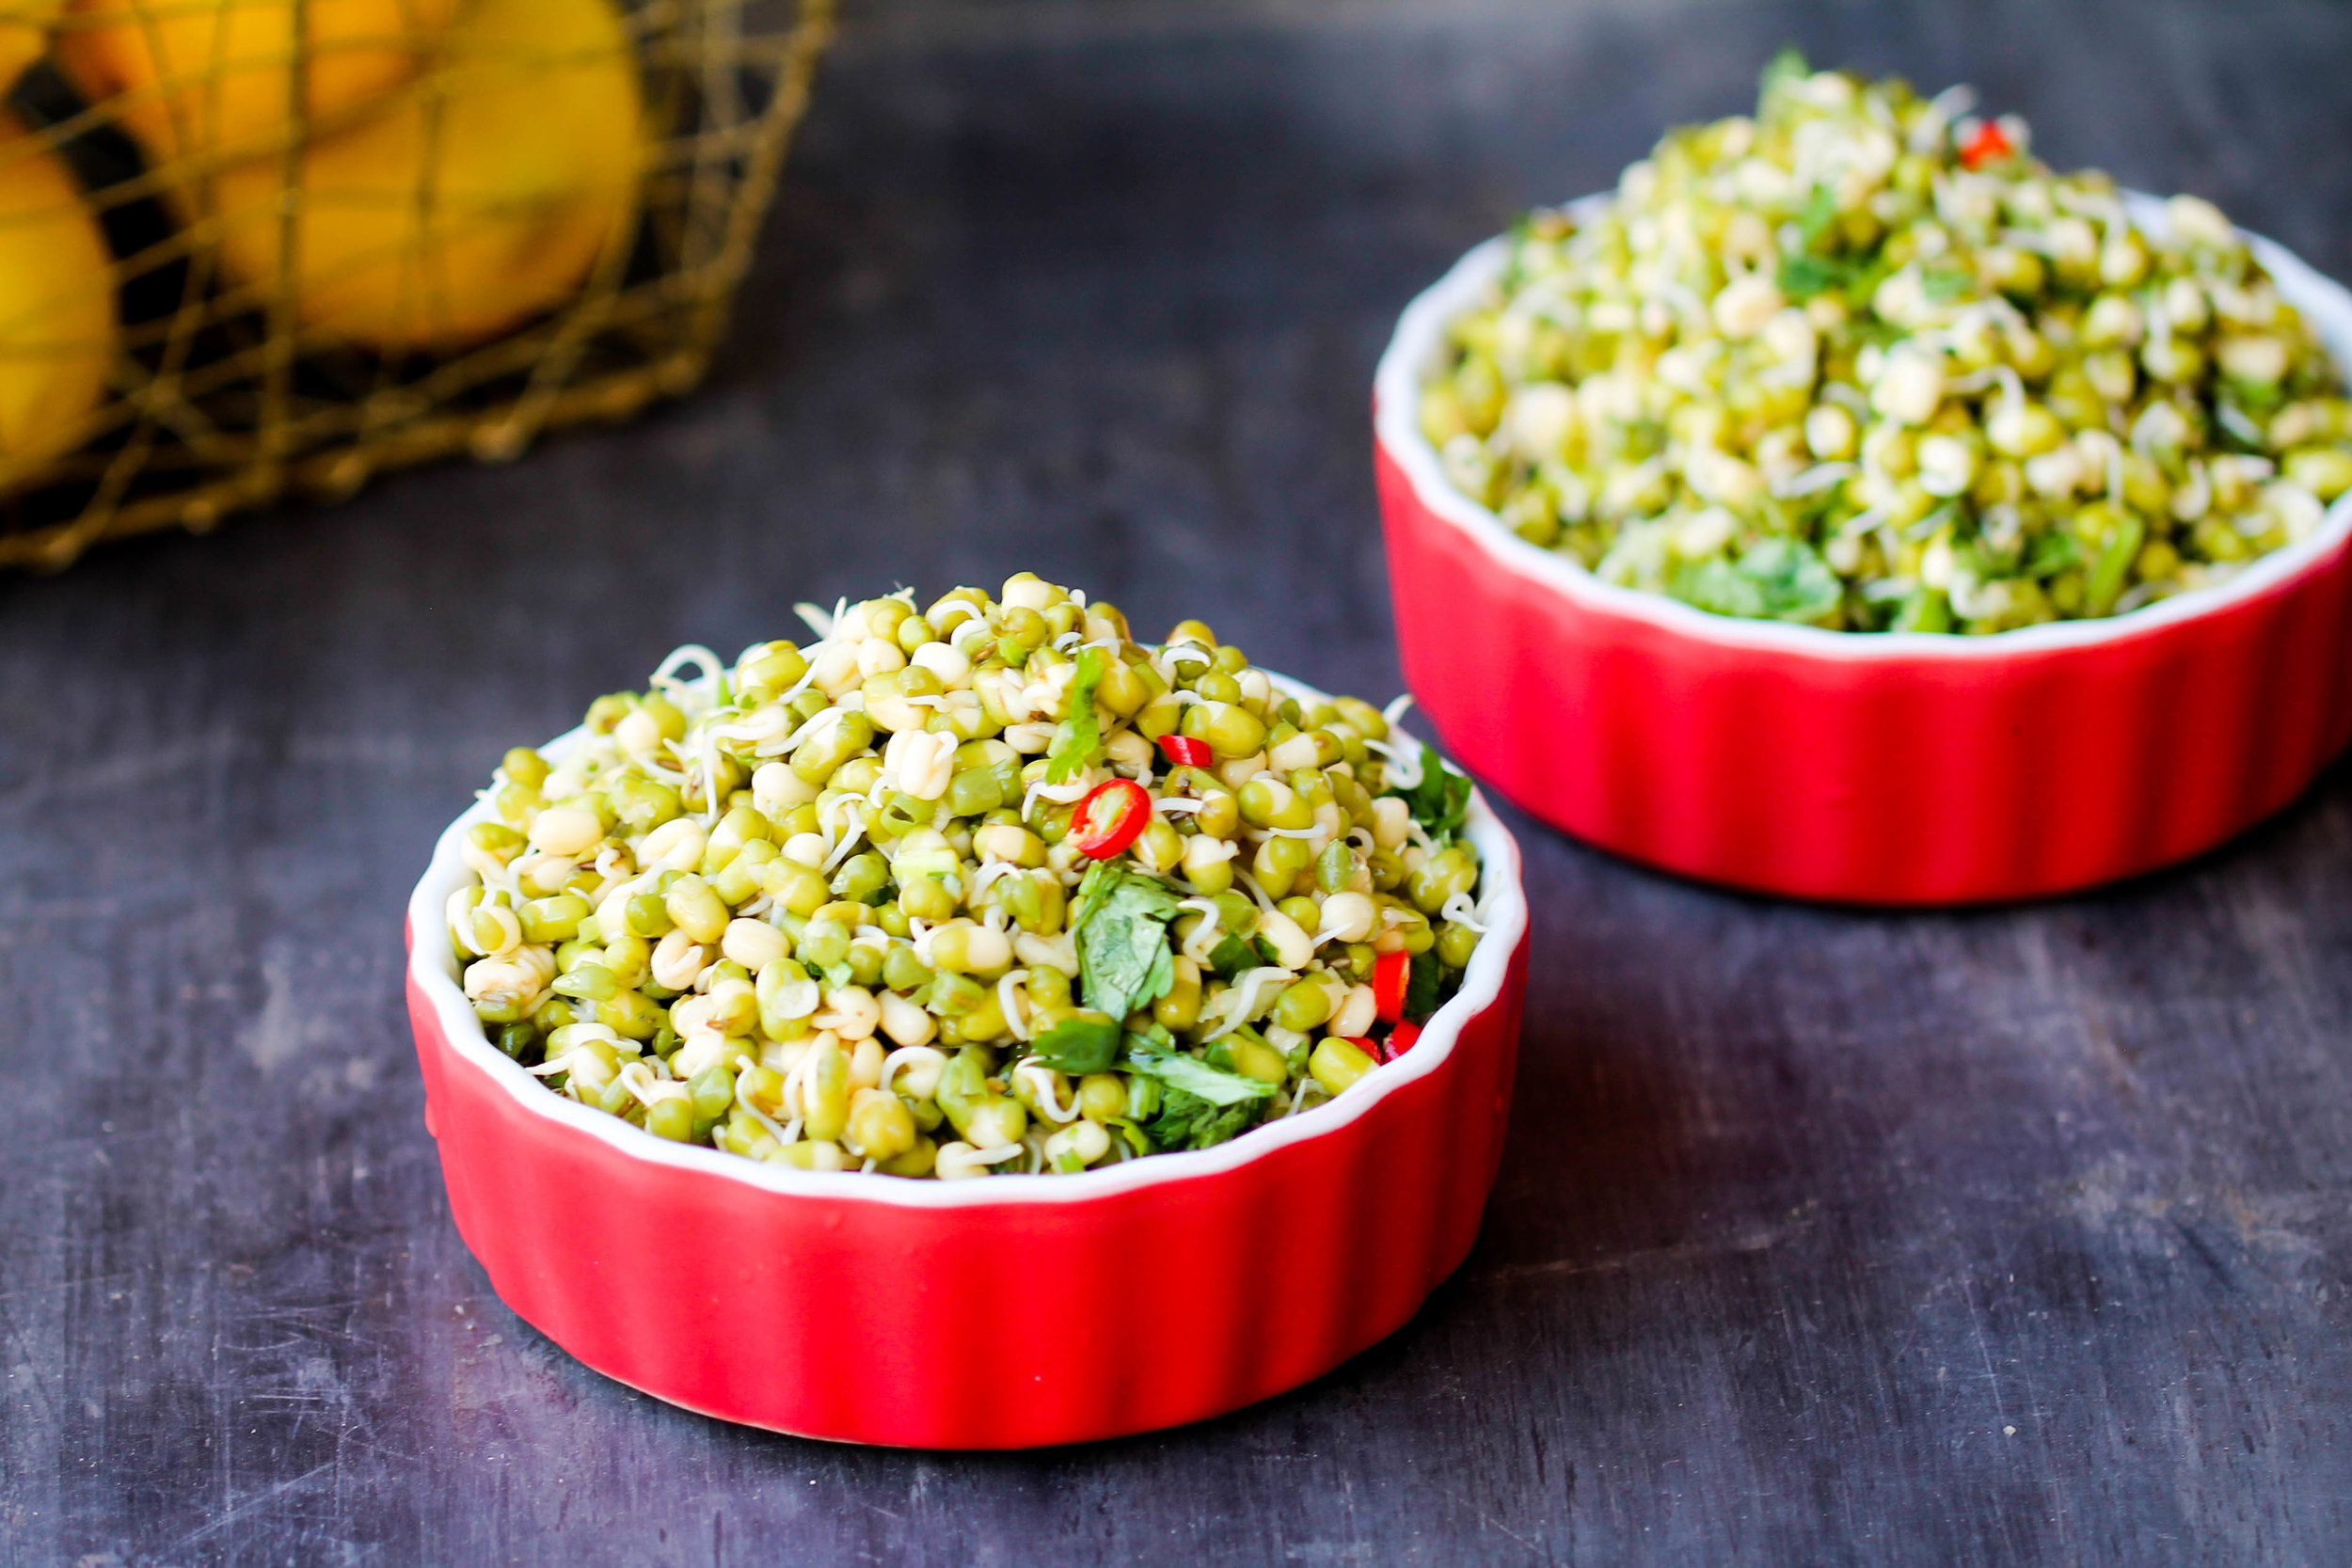 Sprouted Mung Bean Salad is easy, nutrient-dense, and great for a quick lunch! They are naturally vegan, gluten-free.